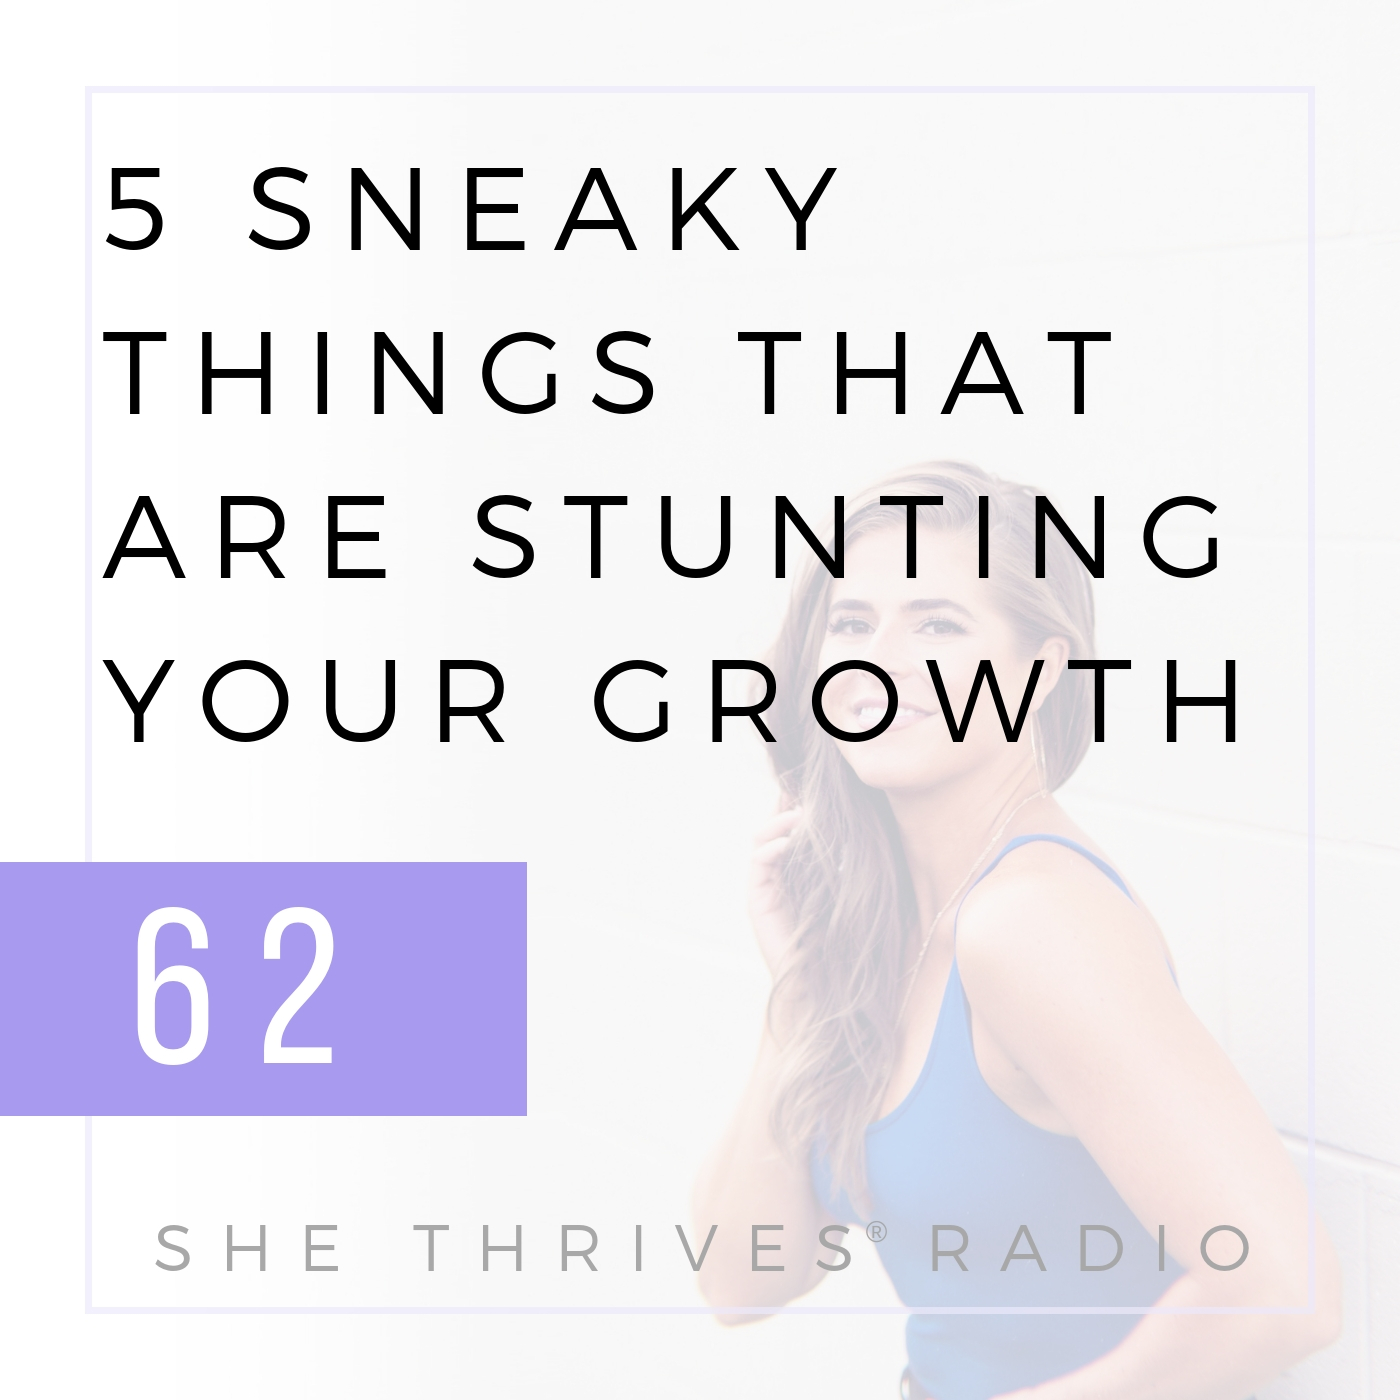 62 | 5 Sneaky Things That Are Stunting Your Growth | SHE THRIVES RADIO